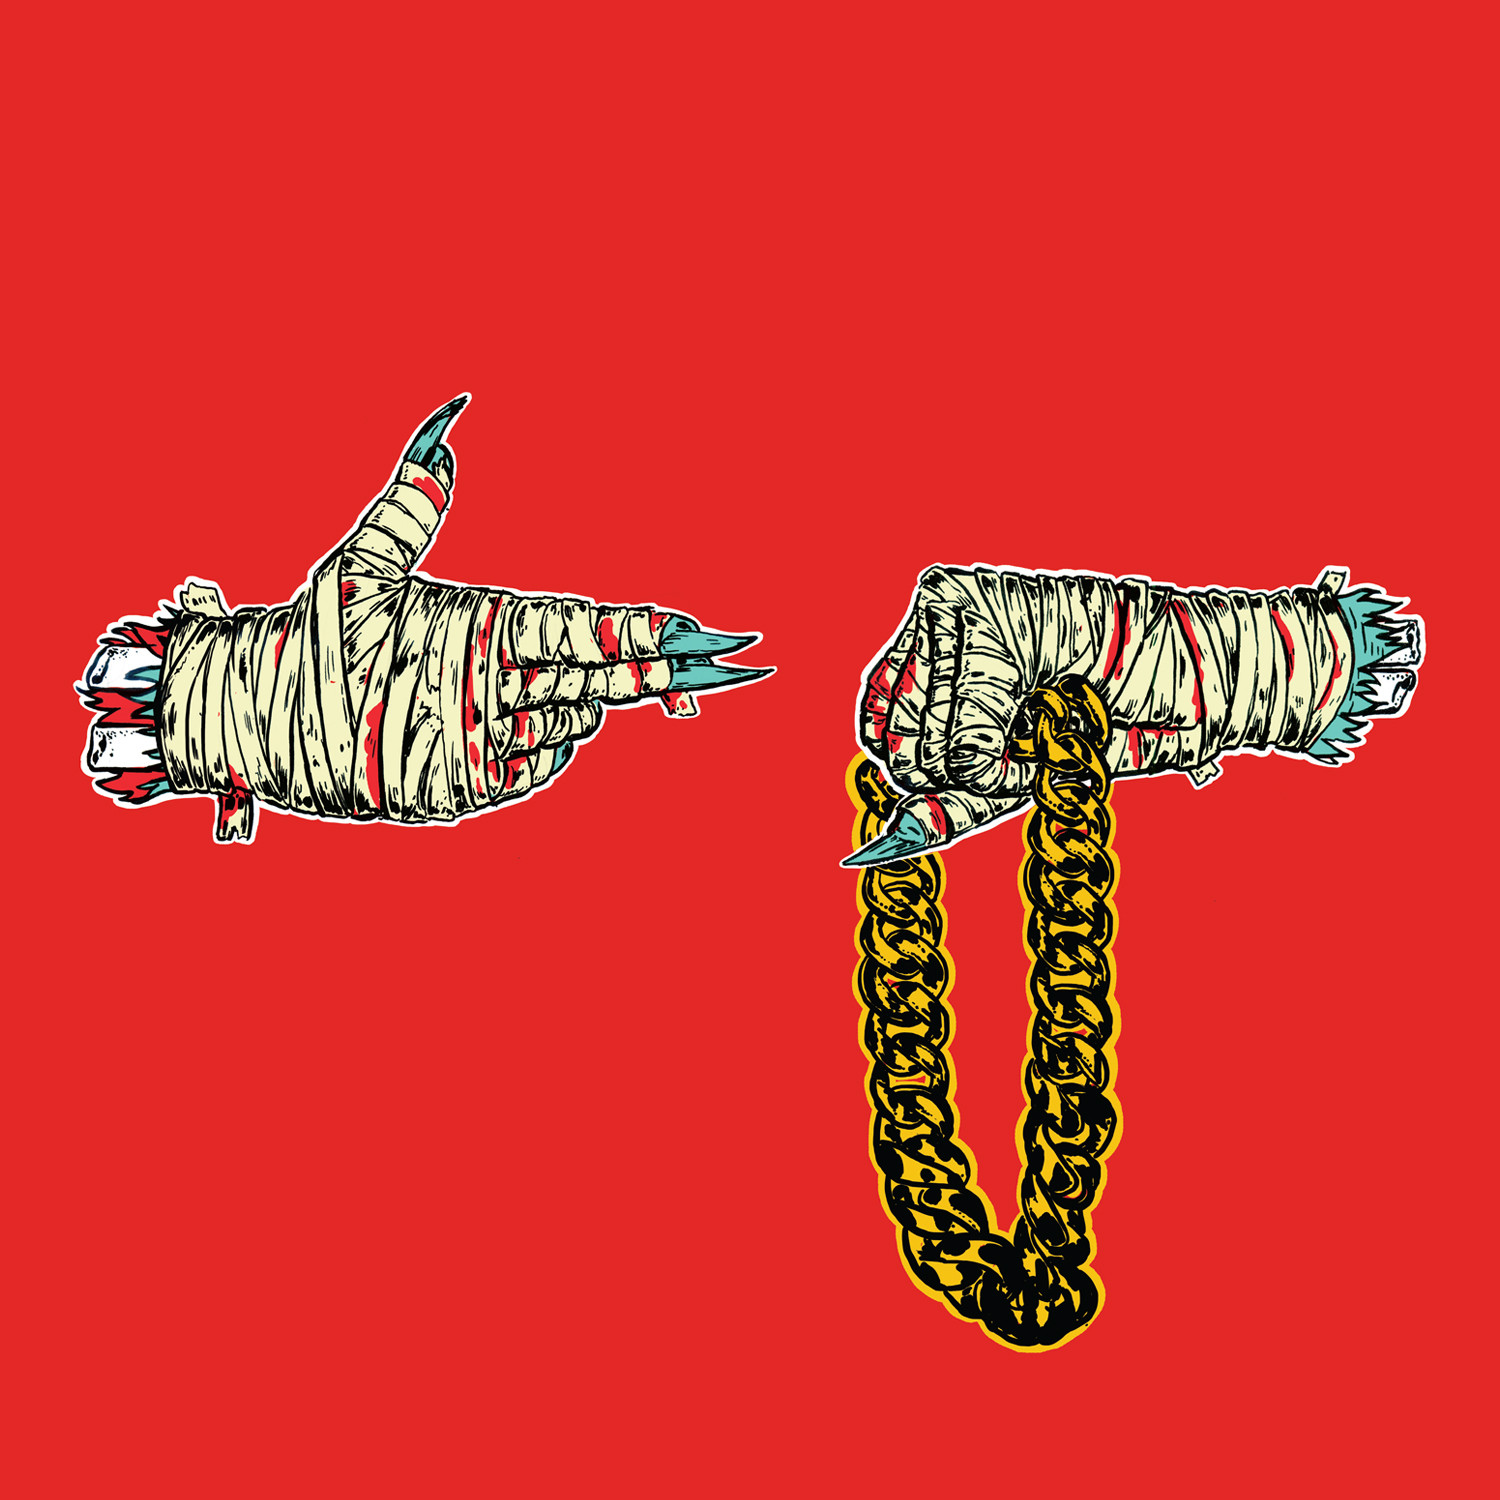 "Run the Jewels: Out of Their Hands - February, 2015 (Interview)When Killer Mike and El-P released their debut album together as Run the Jewels in 2013, they tapped into an unexpected energy that has reverberated beyond just music. It's almost become a phenomenon; a unique somethingthat is perhaps at the heart of their friendship and creative collaboration. ""We weren't looking for anything,"" El-P told me. ""We just found each other and everything that has happened out of it has been this roller coaster of unexpected cooperation and synchronicity."" What manifested itself with RTJ over the past two and a half years is the response to the hand gesture featured on the album covers that has become emblematic. That is where we begin our conversation with producer and rapper El-P... [Read more]"